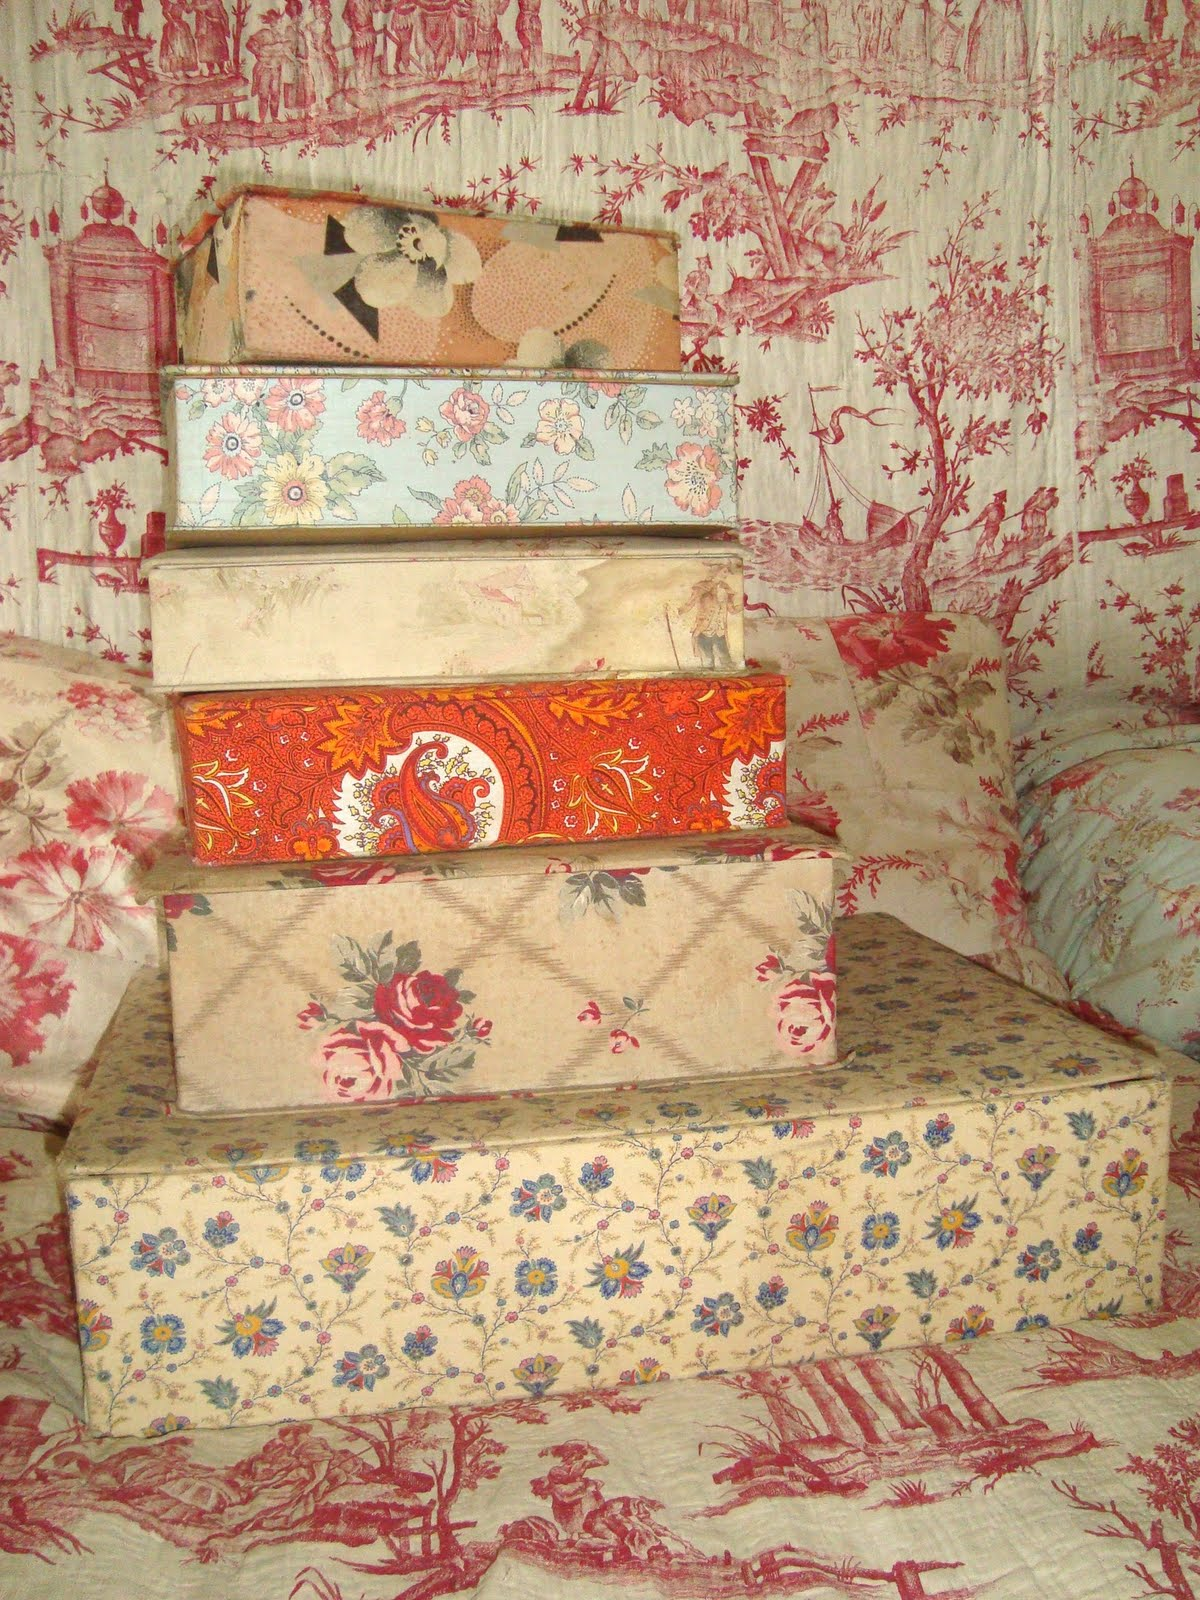 You can never have too many boxes, especially pretty vintage French ones  like these!